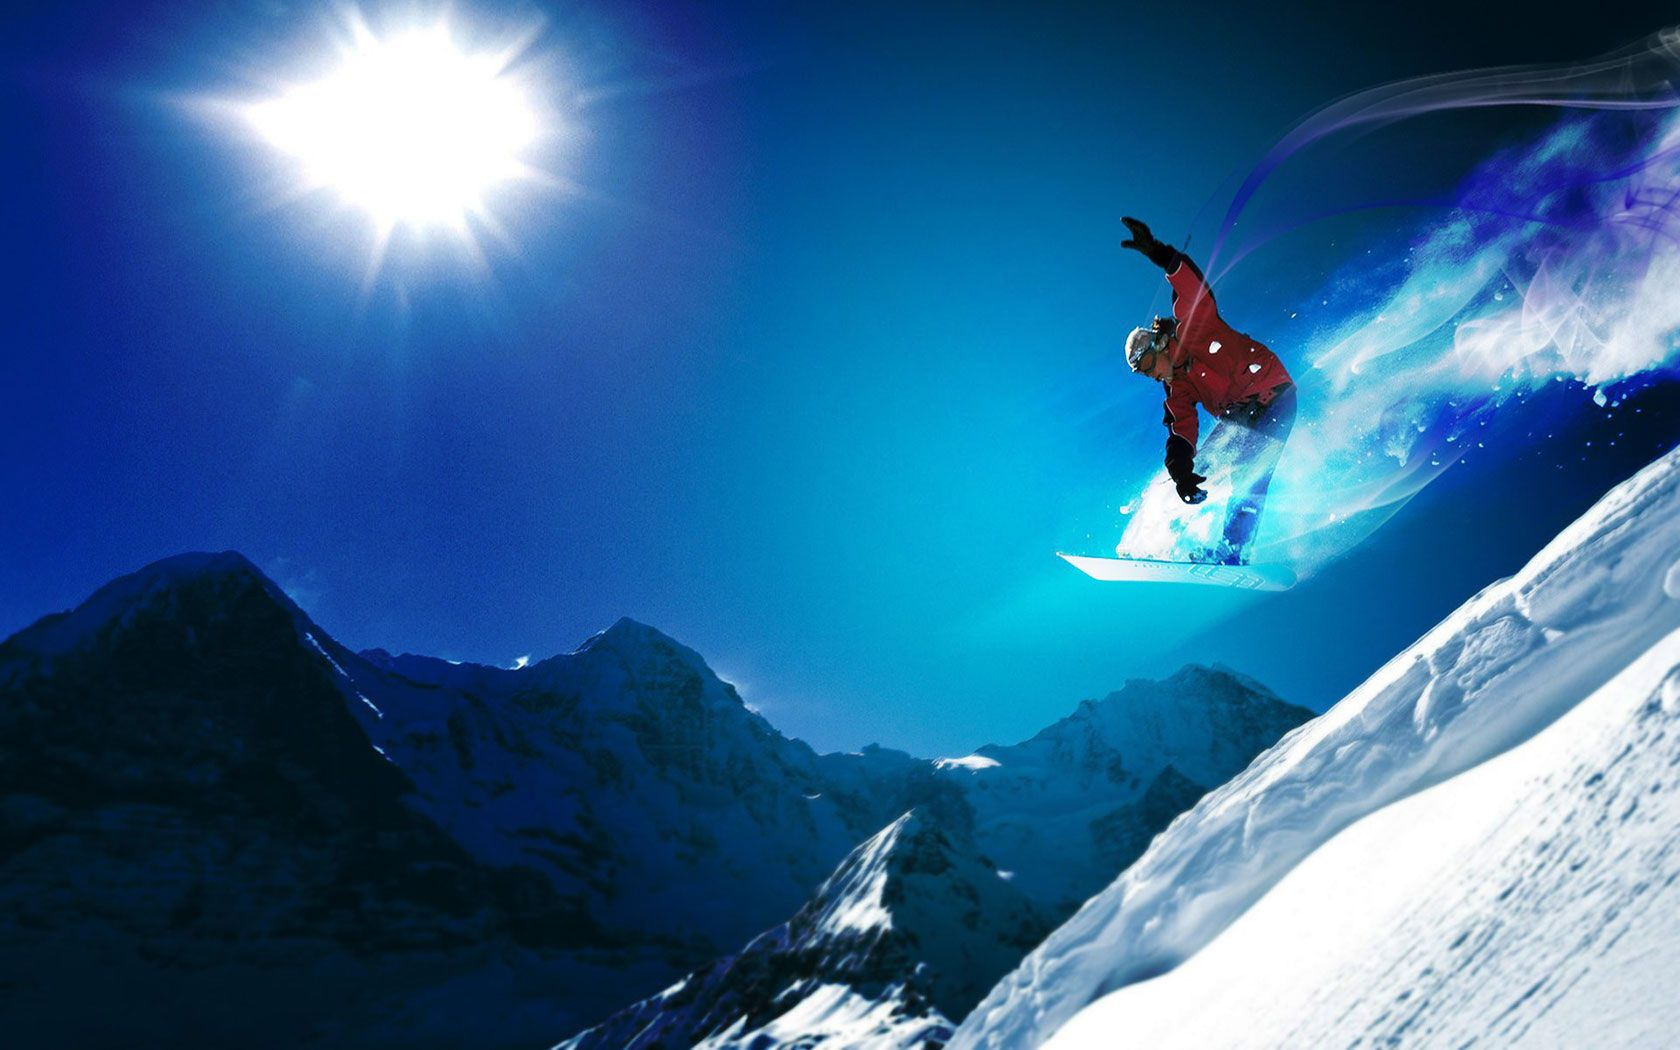 Snowboard Jump Hd Desktop Wallpaper Snowboarding